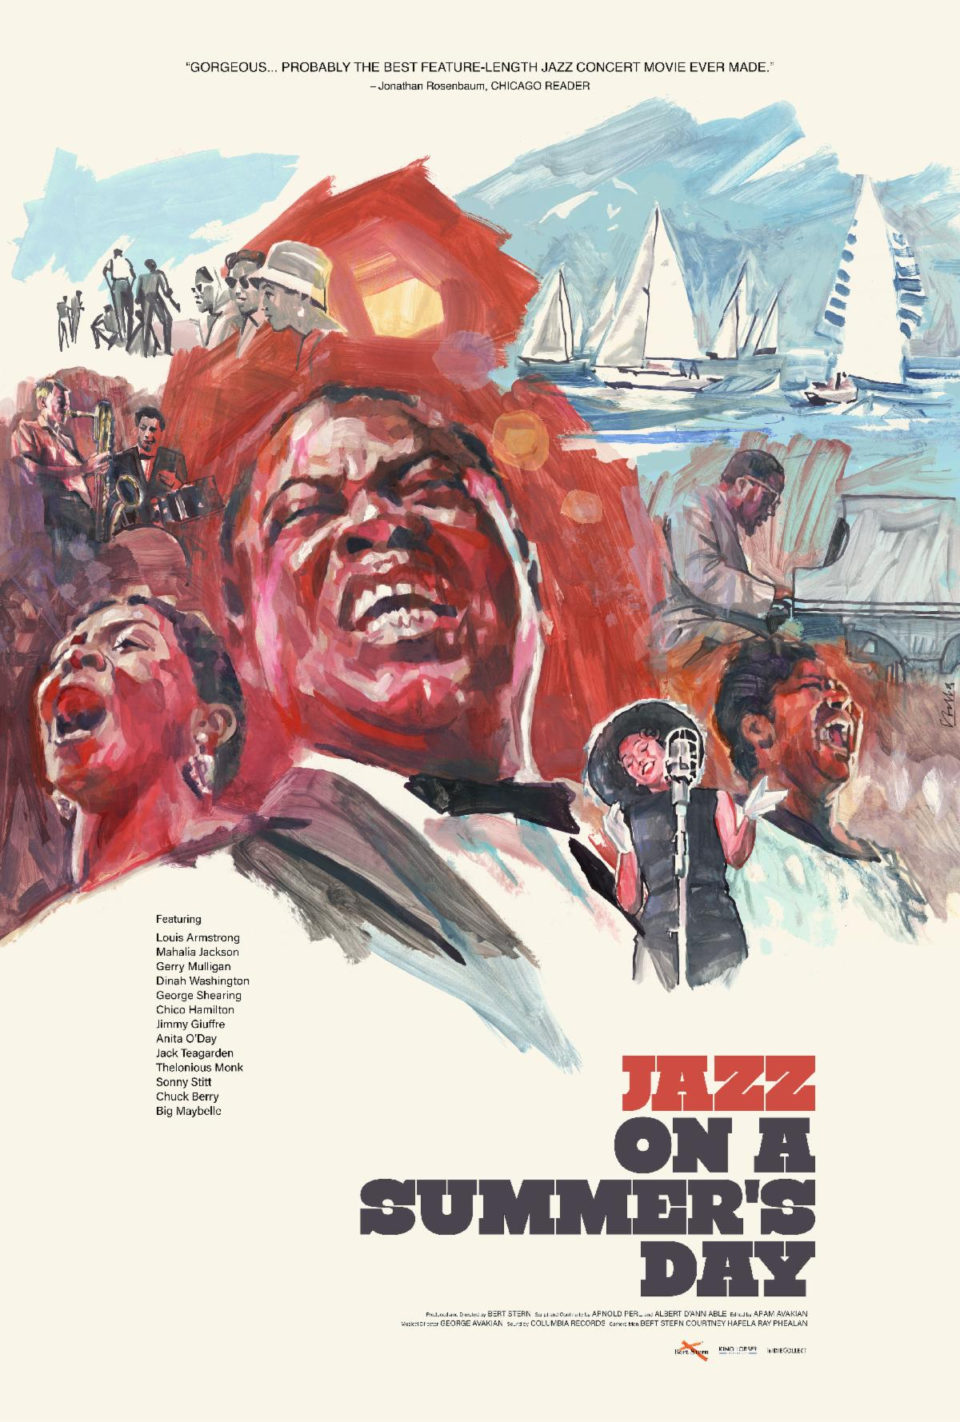 poster for re-release of Jazz on a Summer's Day